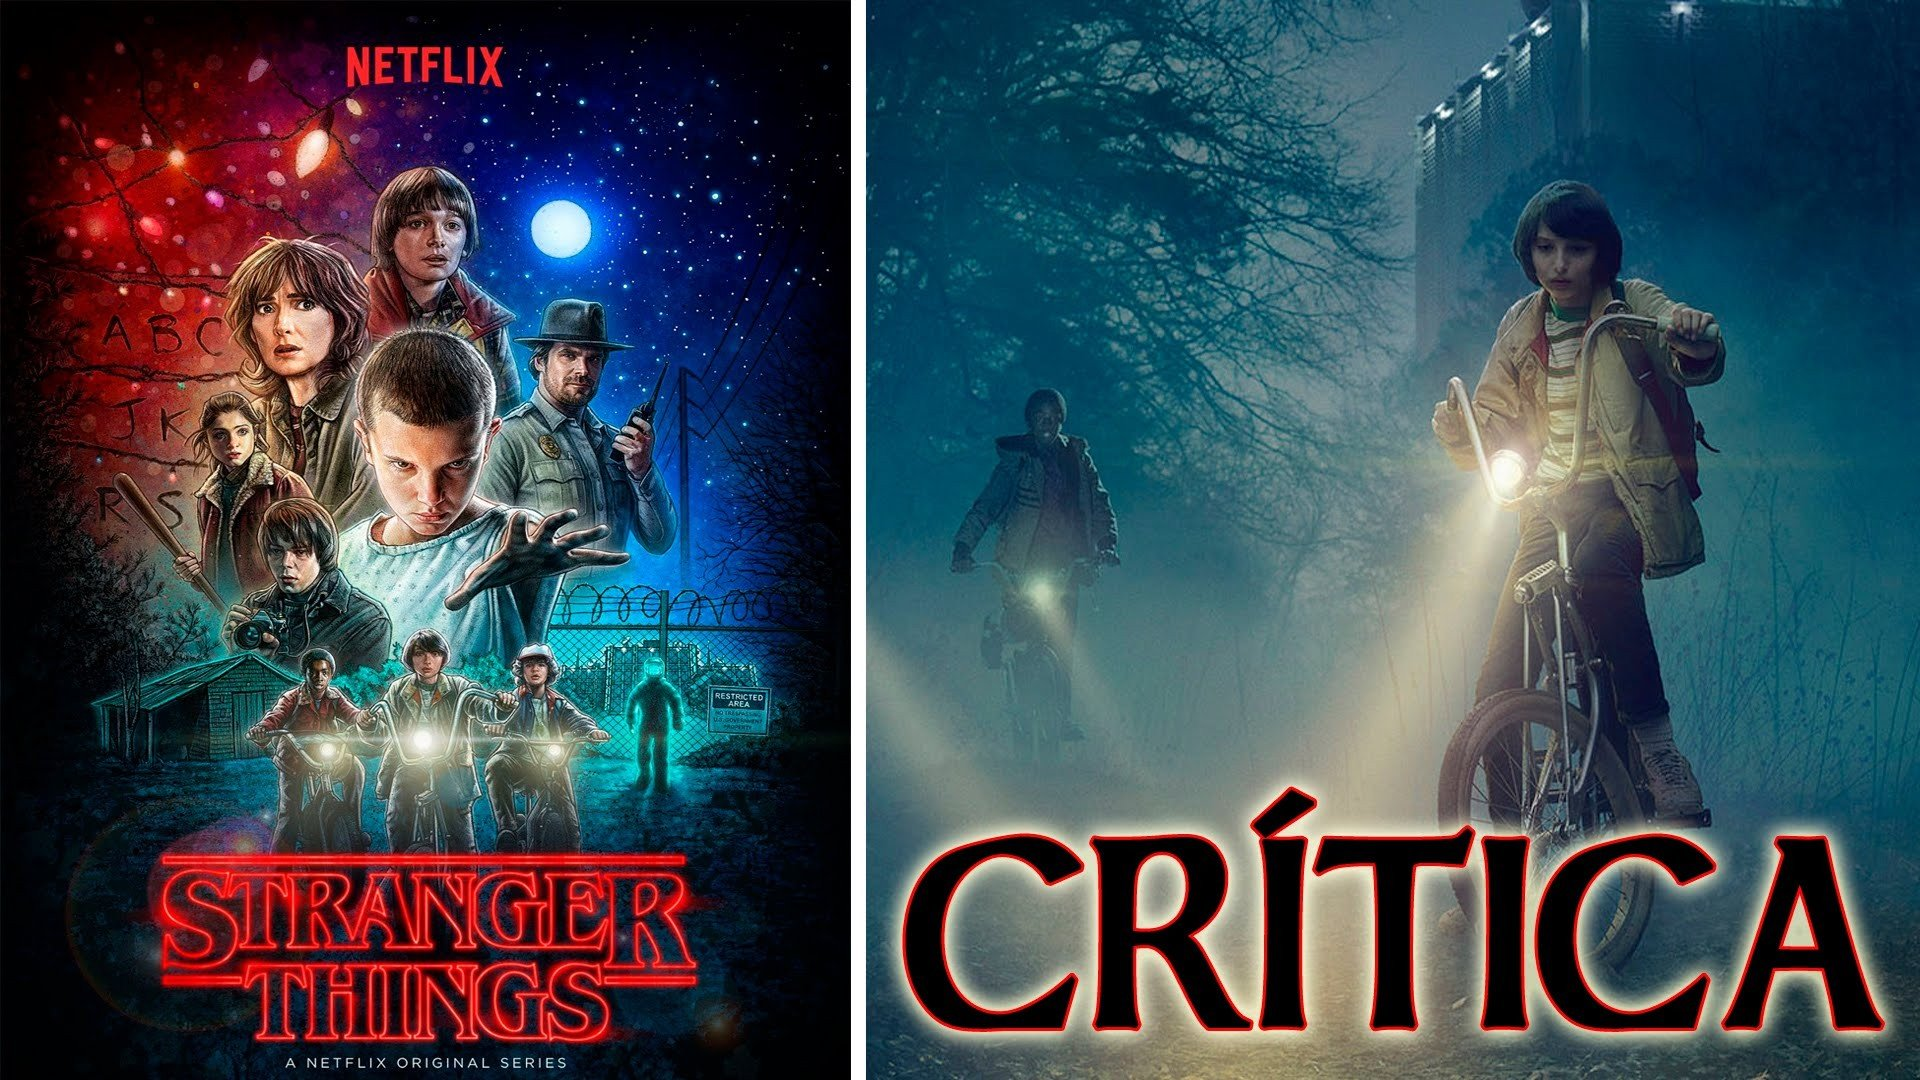 Stranger Things wallpaper Download beautiful 1920x1080